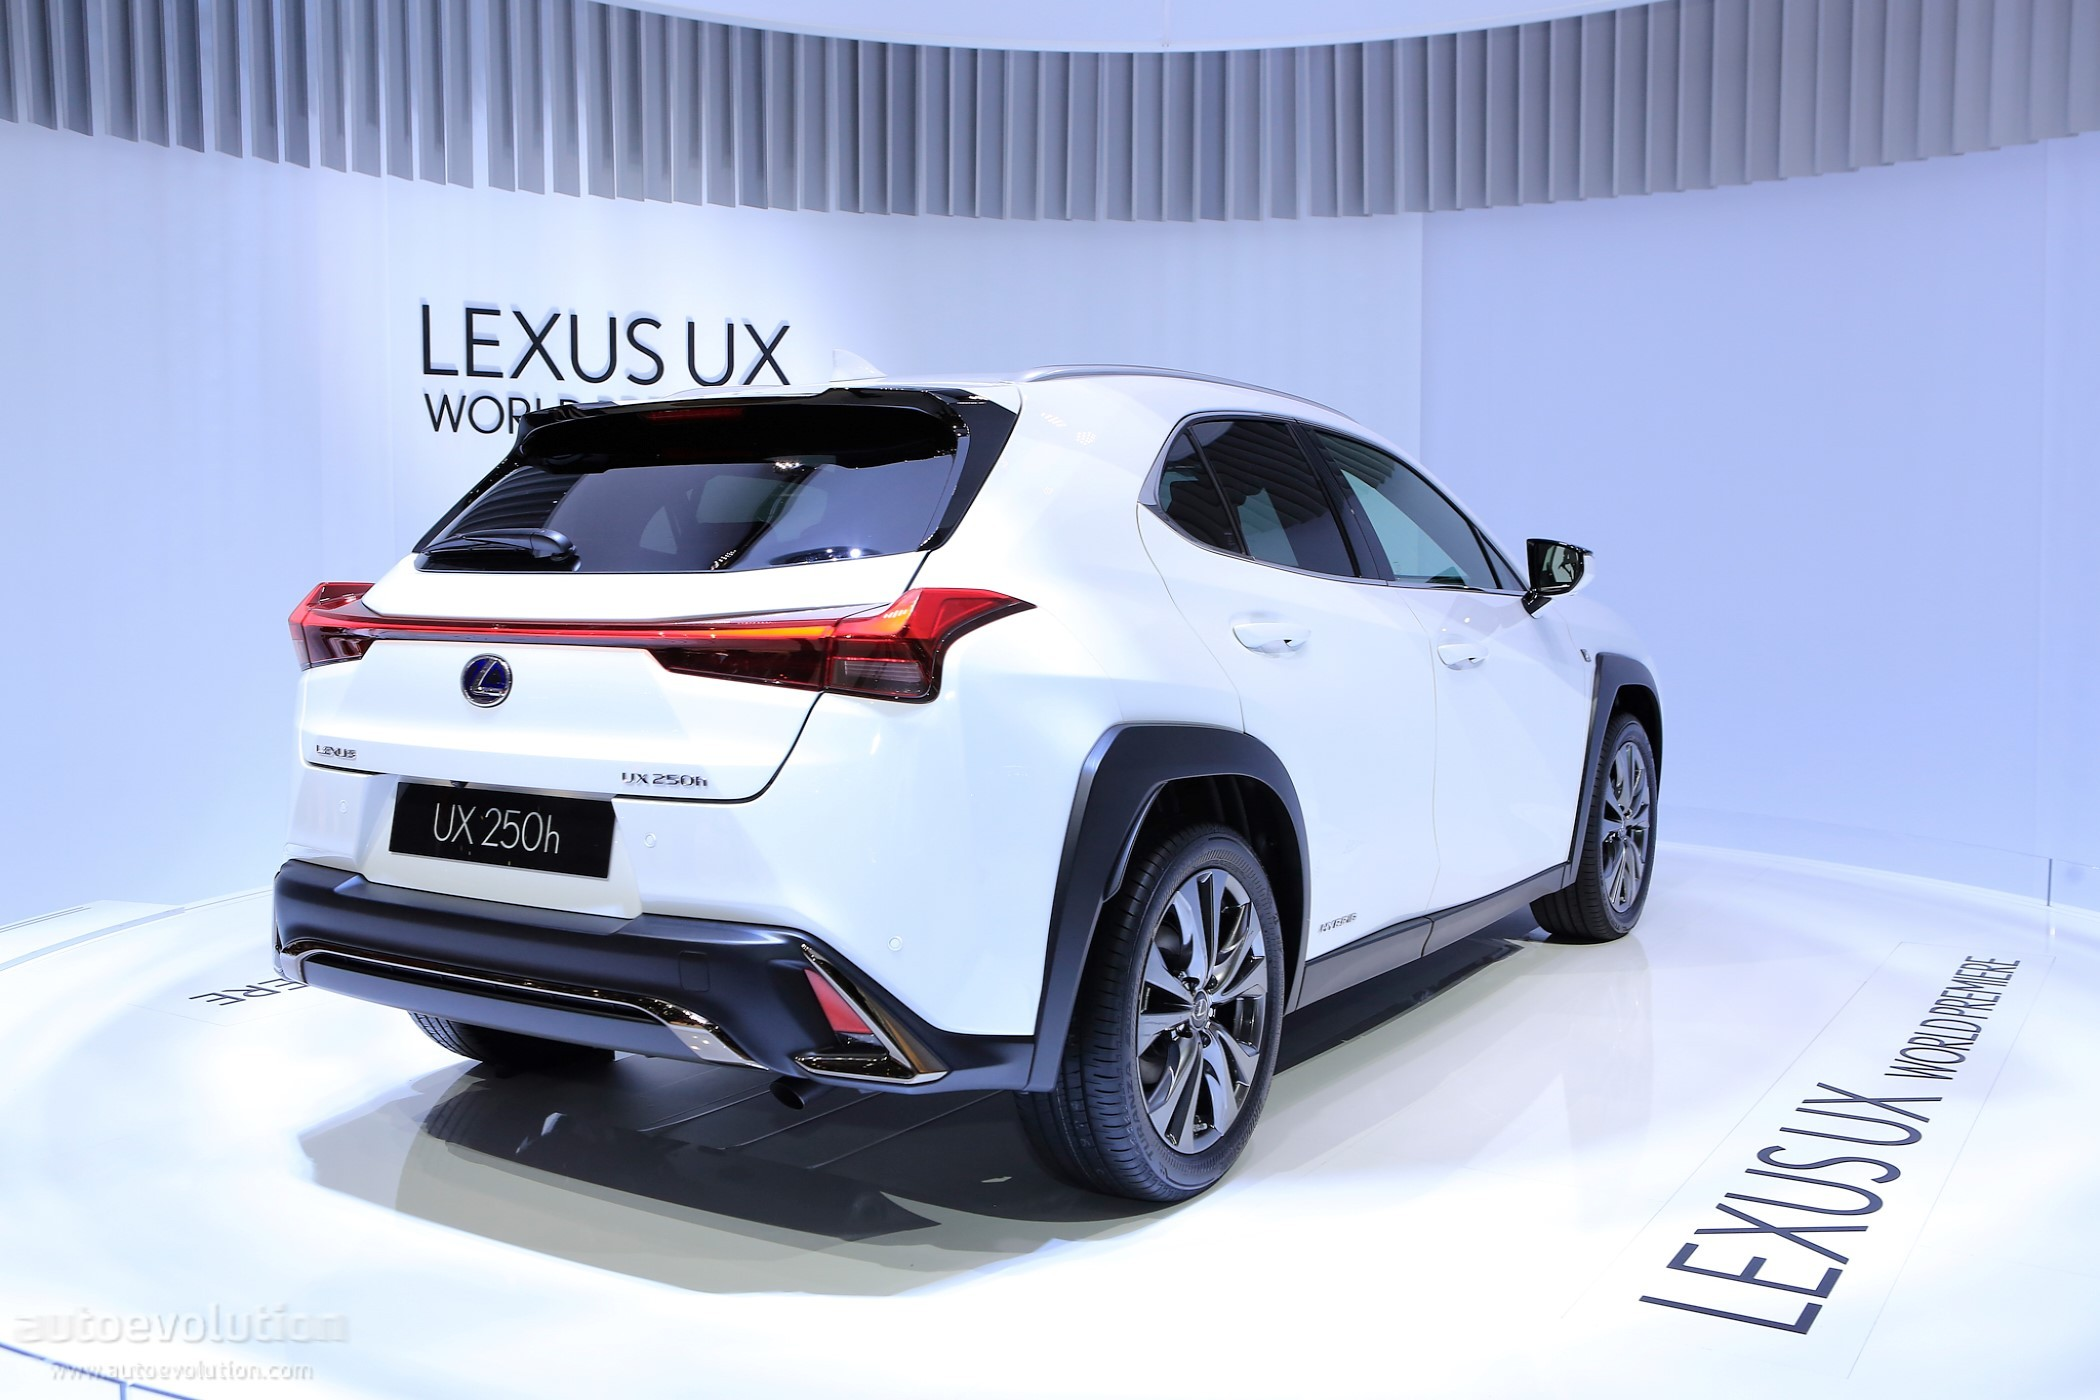 lexus confirms plans for seven-seat rx - autoevolution